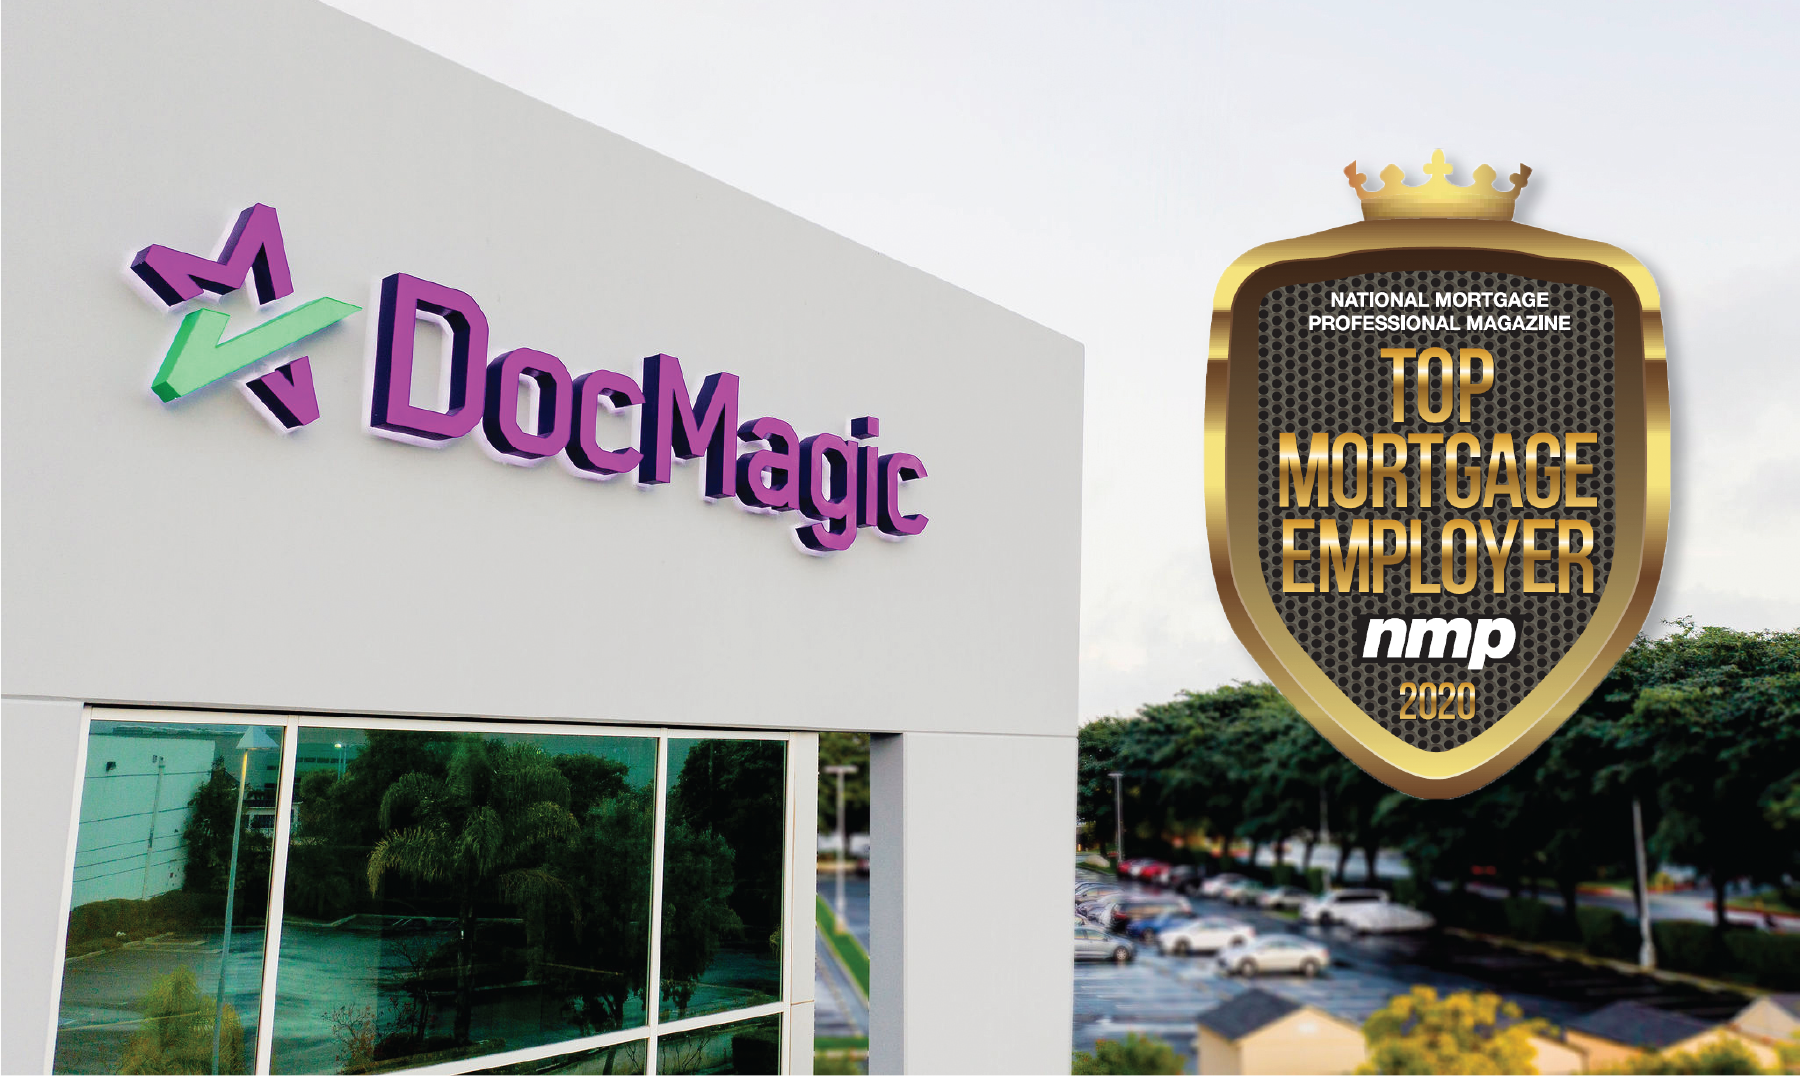 DocMagic has been named a Top Mortgage Employer by National Mortgage Professional Magazine for the fourth year in a row.